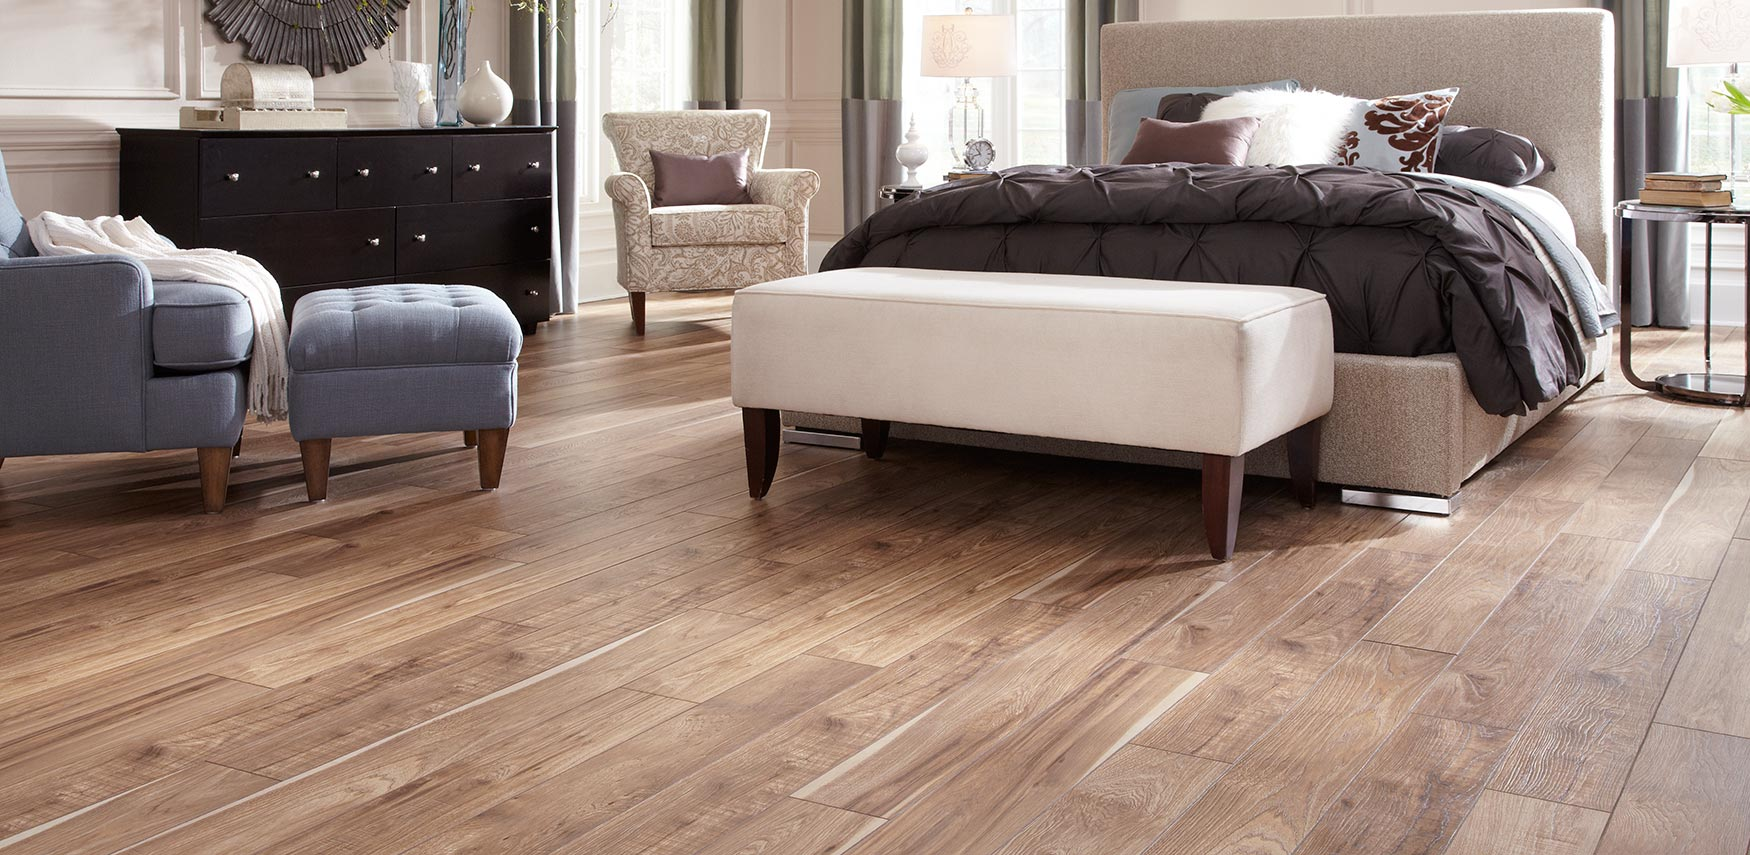 Mannington flooring resilient laminate hardwood luxury vinyl laminate flooring dailygadgetfo Gallery